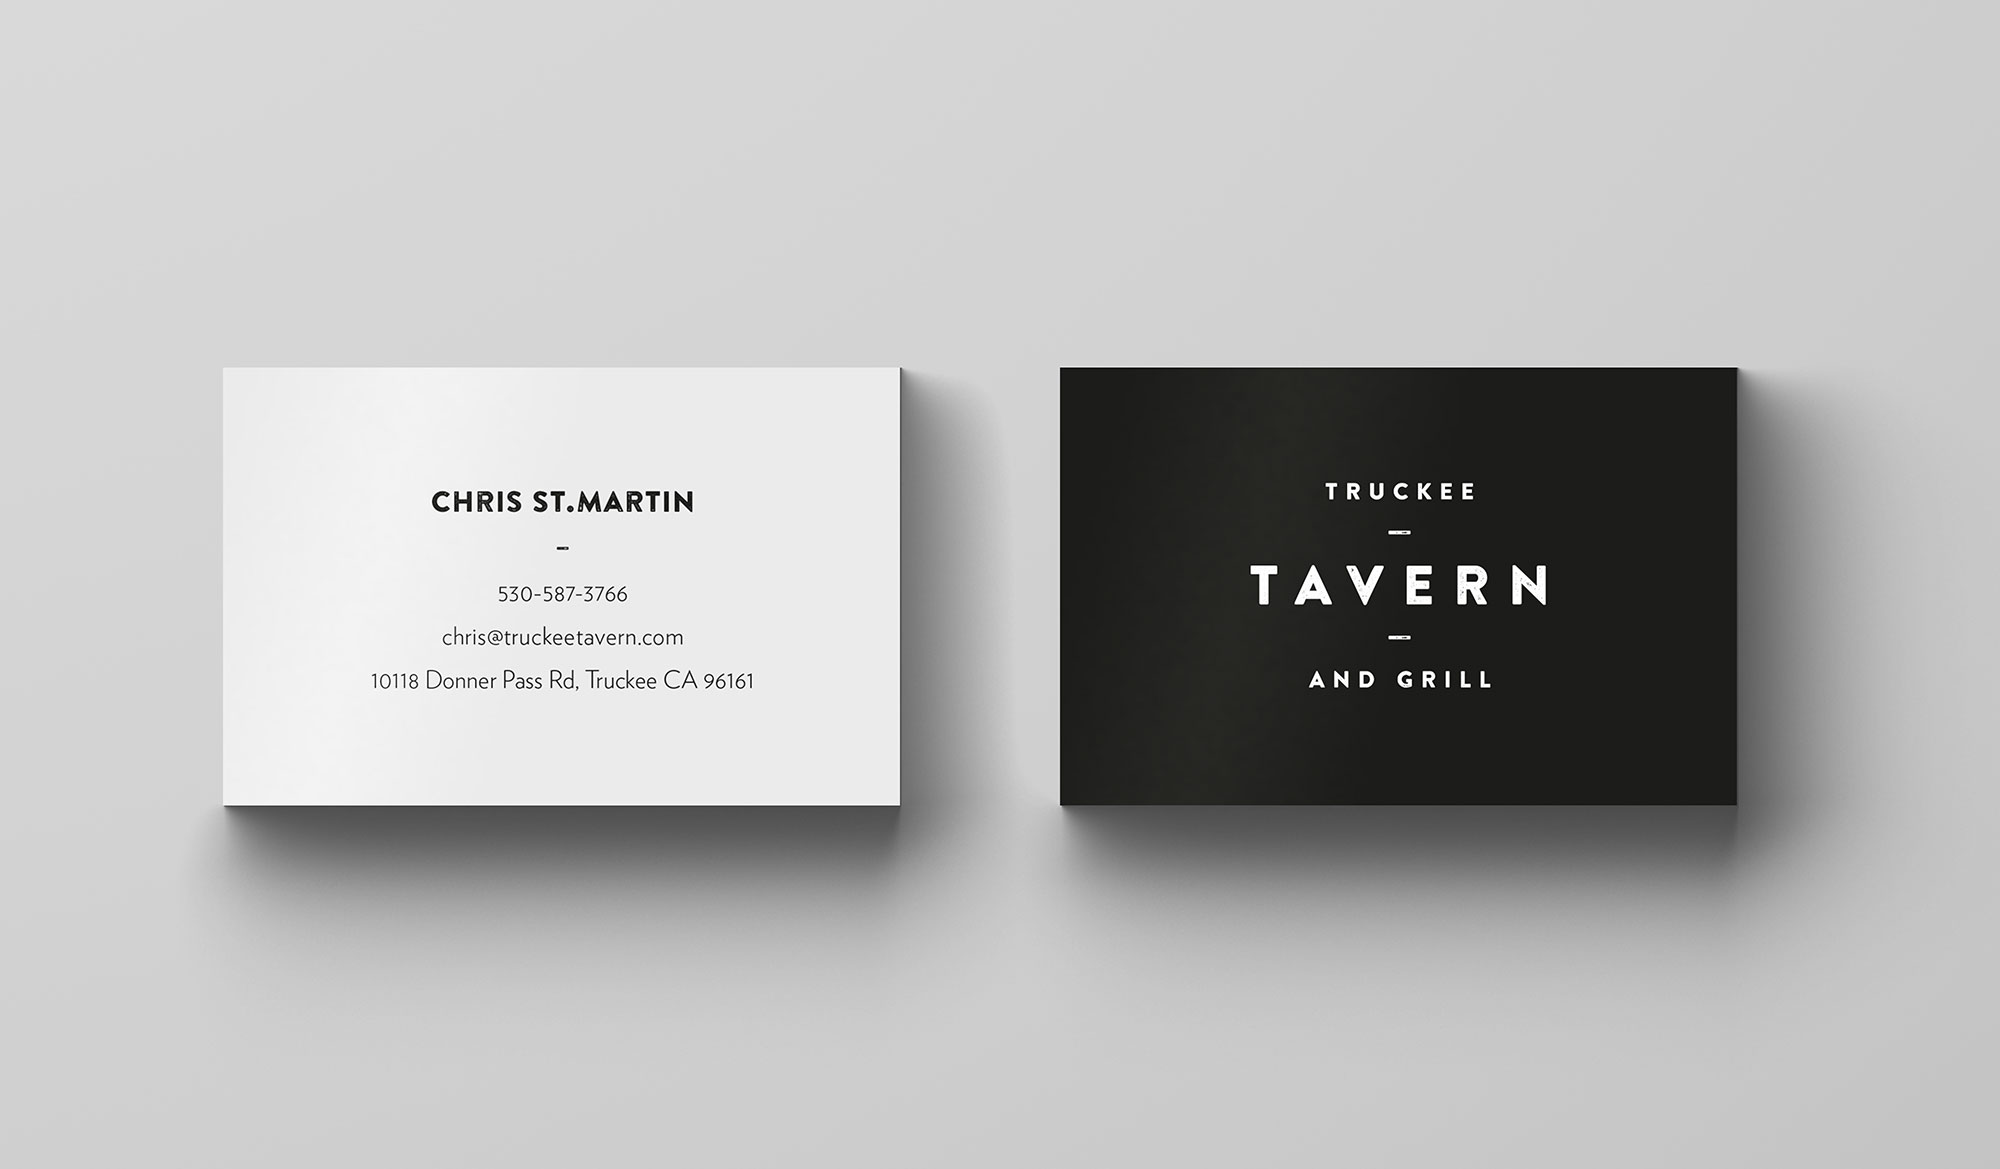 Truckee Tavern business card.jpg